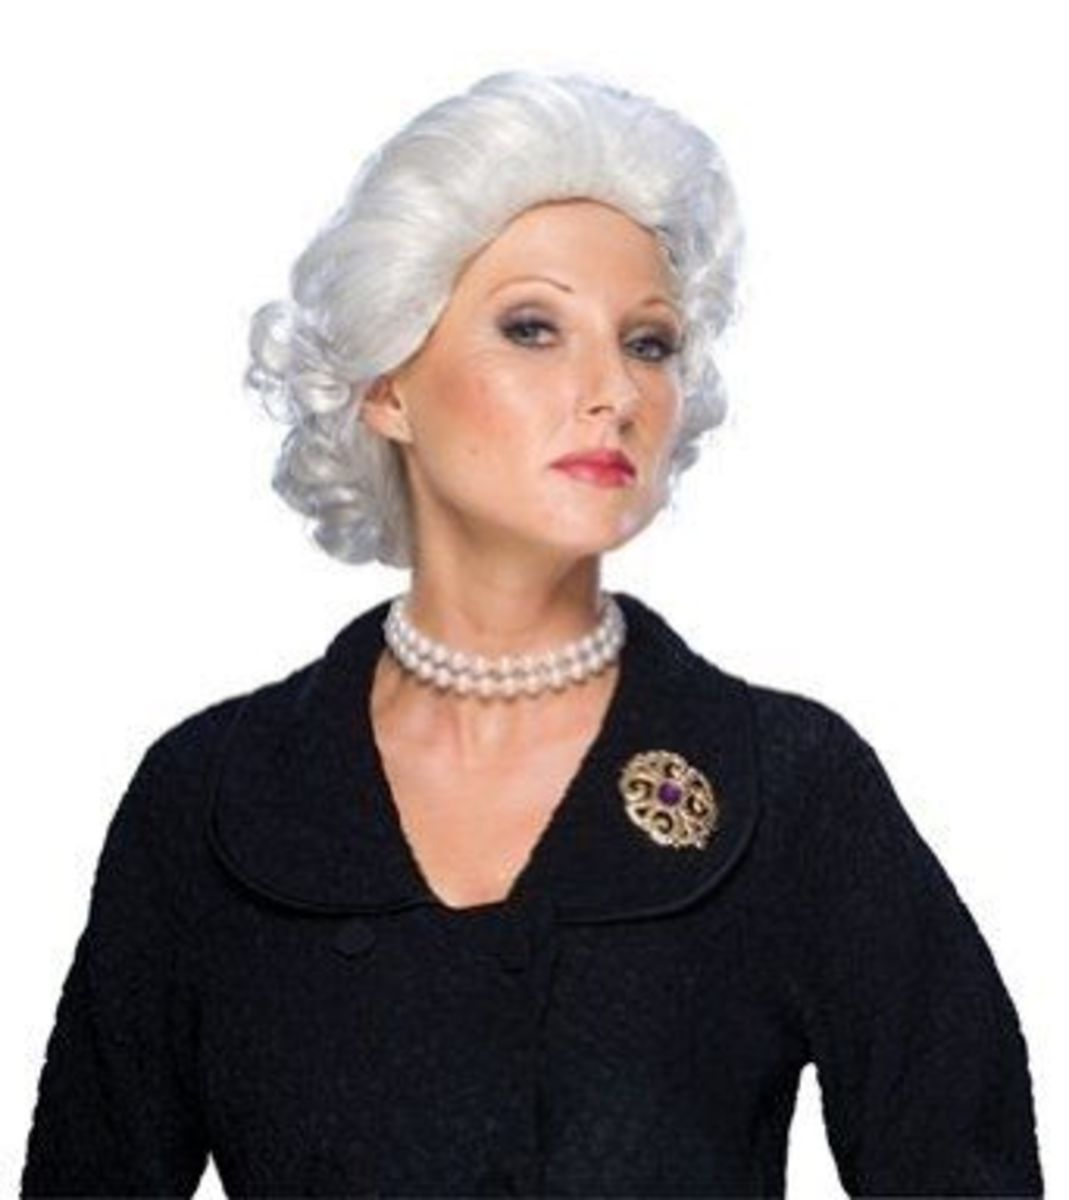 Try a Queen Elizabeth White Wig as part of the Halloween costume.